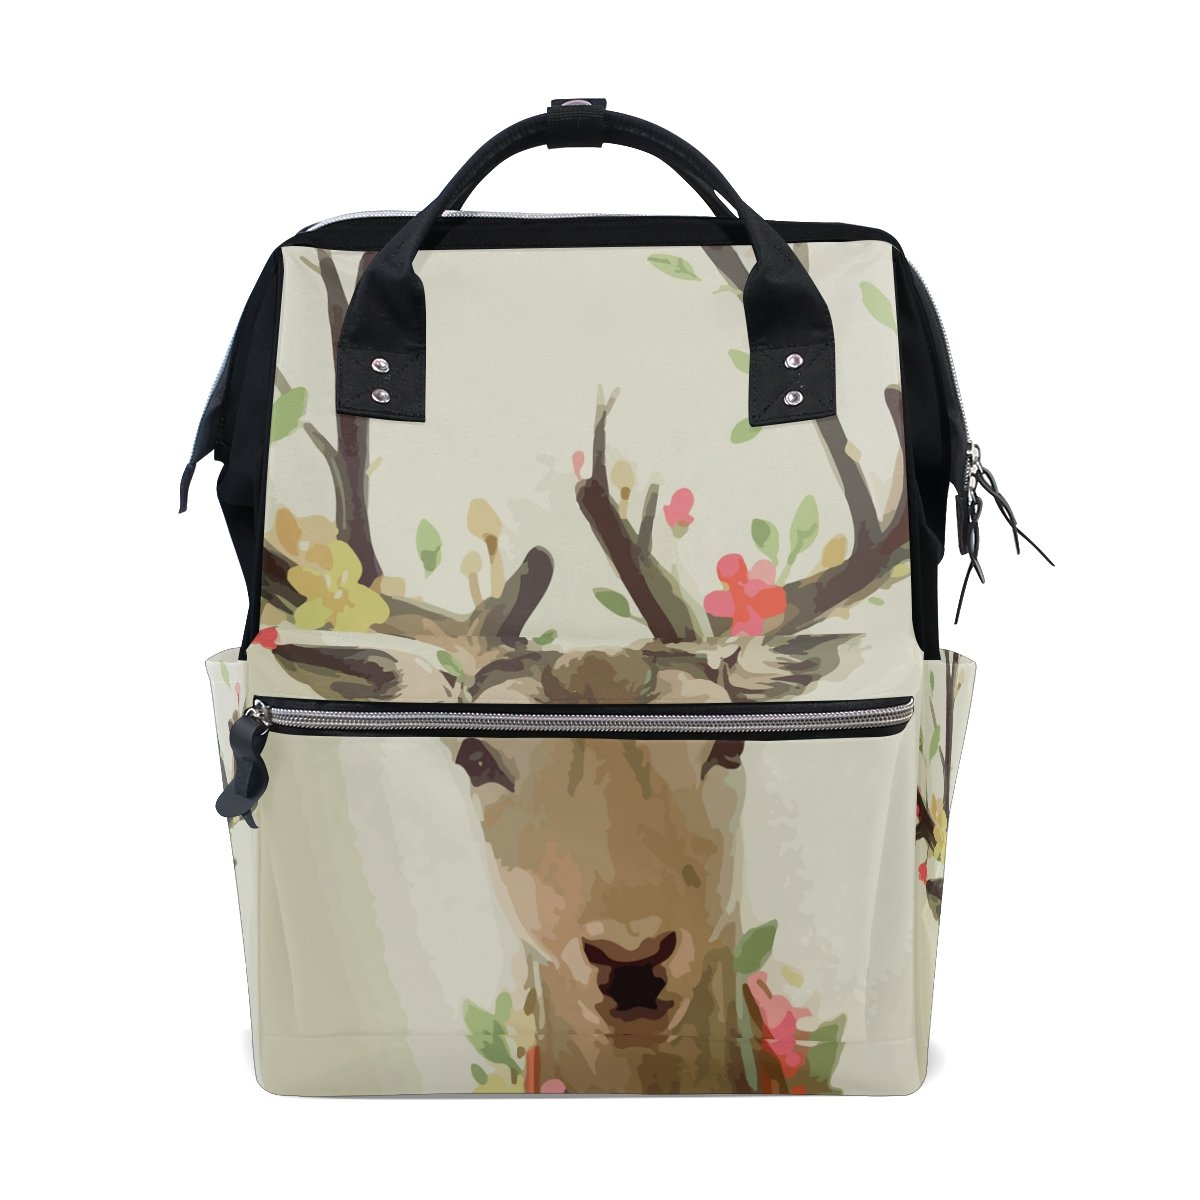 Diaper Bags Backpack Purse Mummy Backpack Fashion Mummy Maternity Nappy Bag Cool Cute Travel Backpack Laptop Backpack with Watercolor Animal Deer Daypack for Women Girls Kids